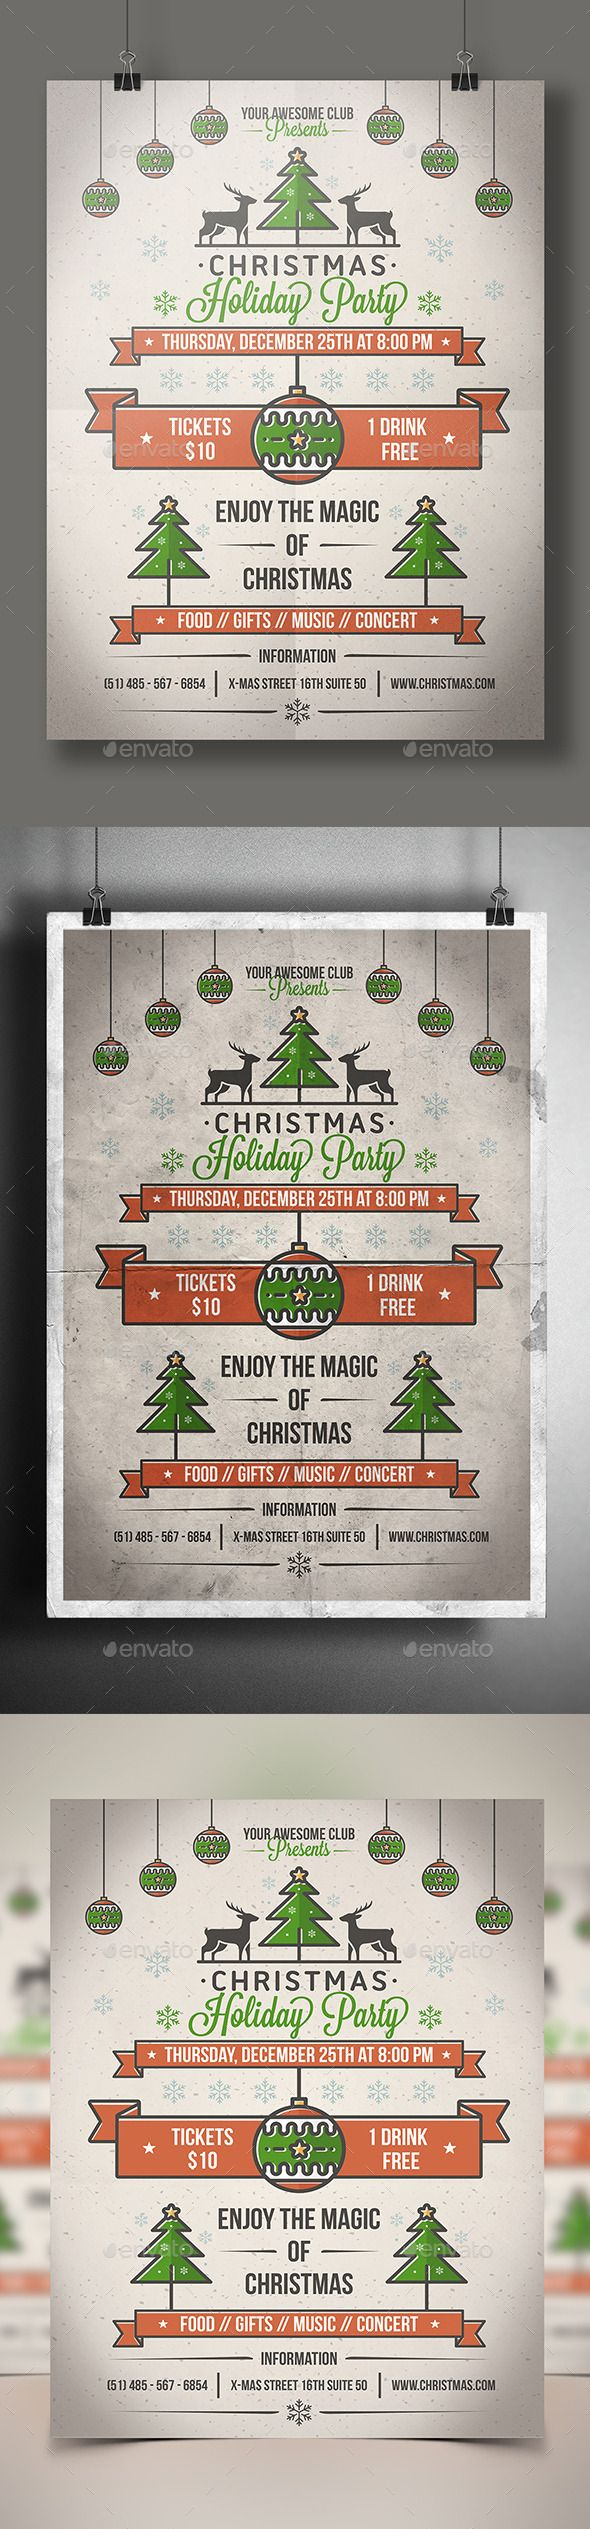 Xmas poster design - Christmas Party Poster Flyer